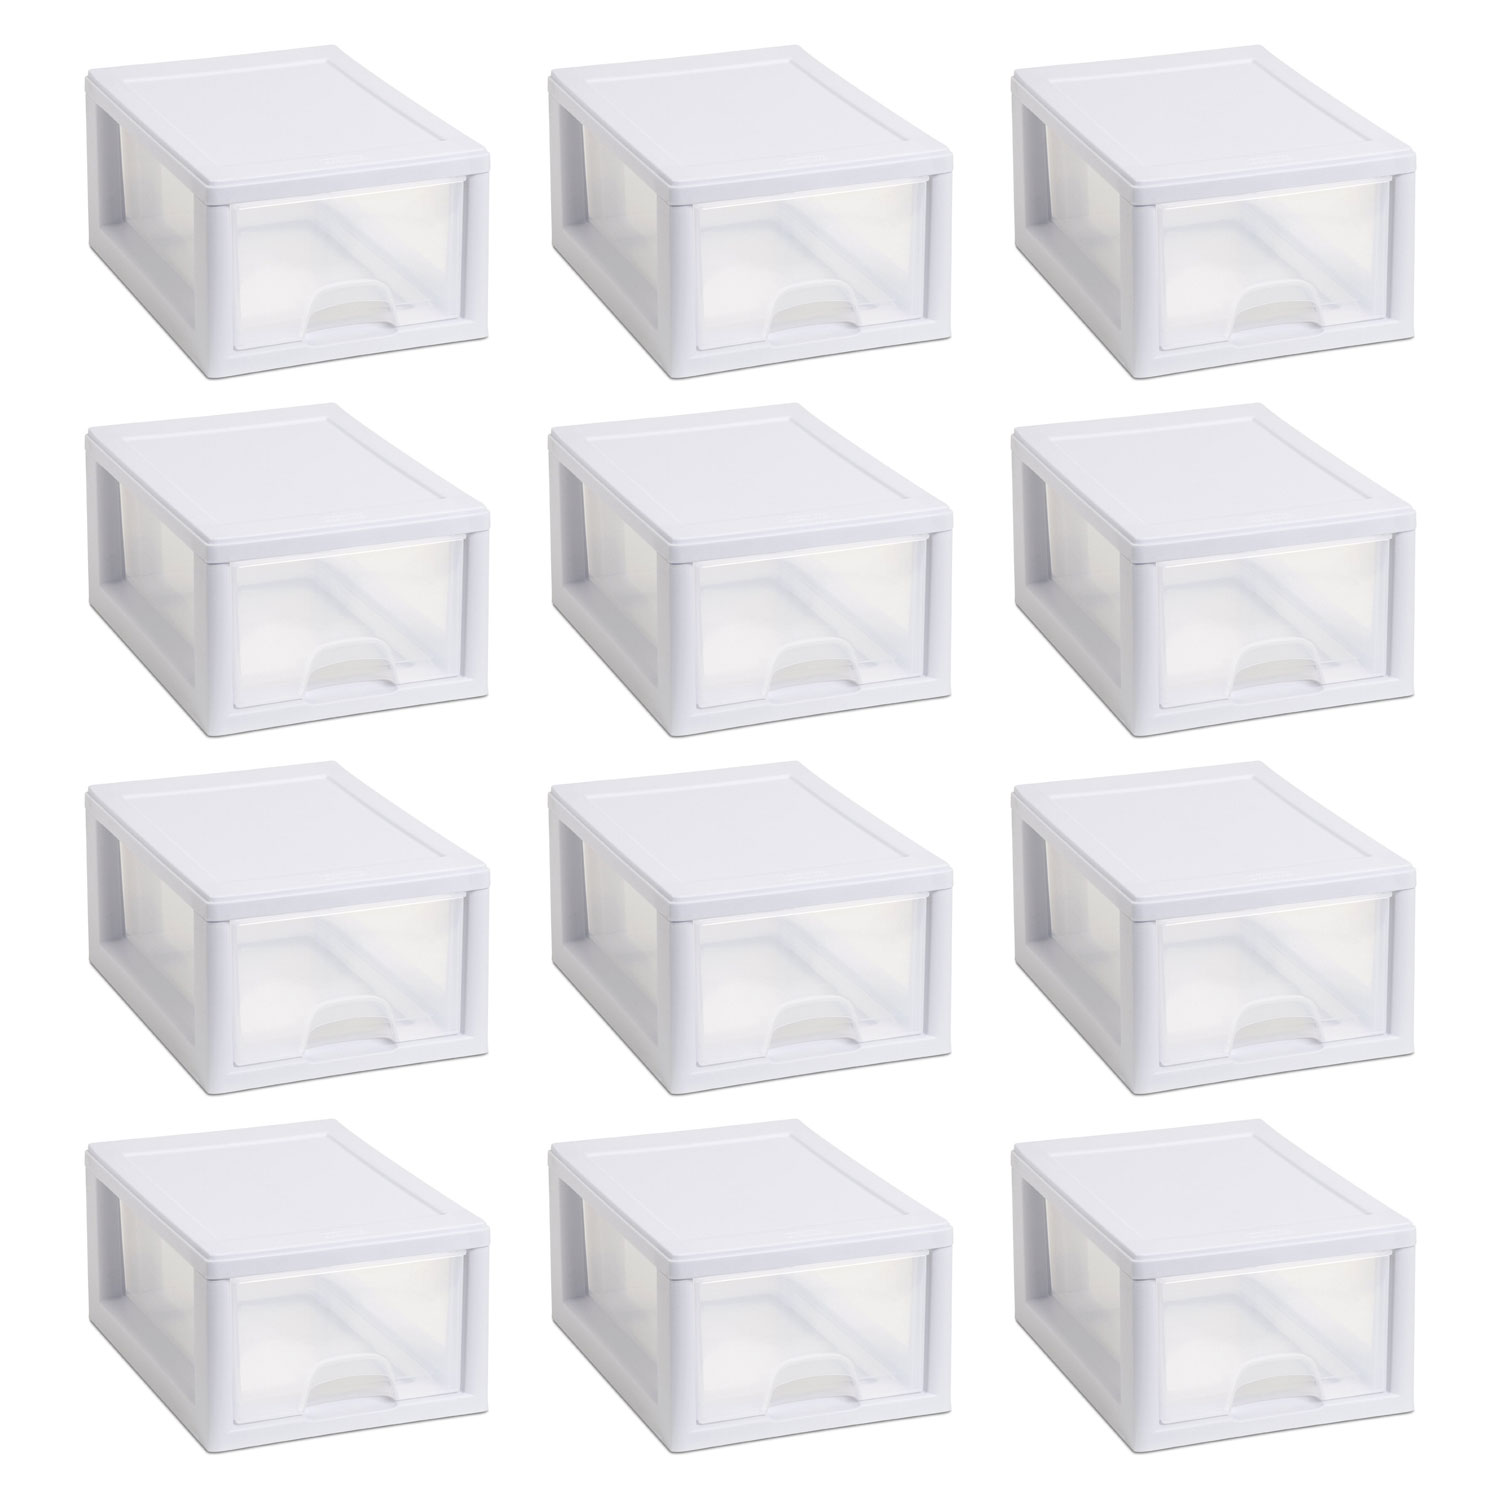 Sterilite 20518006 Stackable Small Drawer White Frame & See-Through (12 Pack)